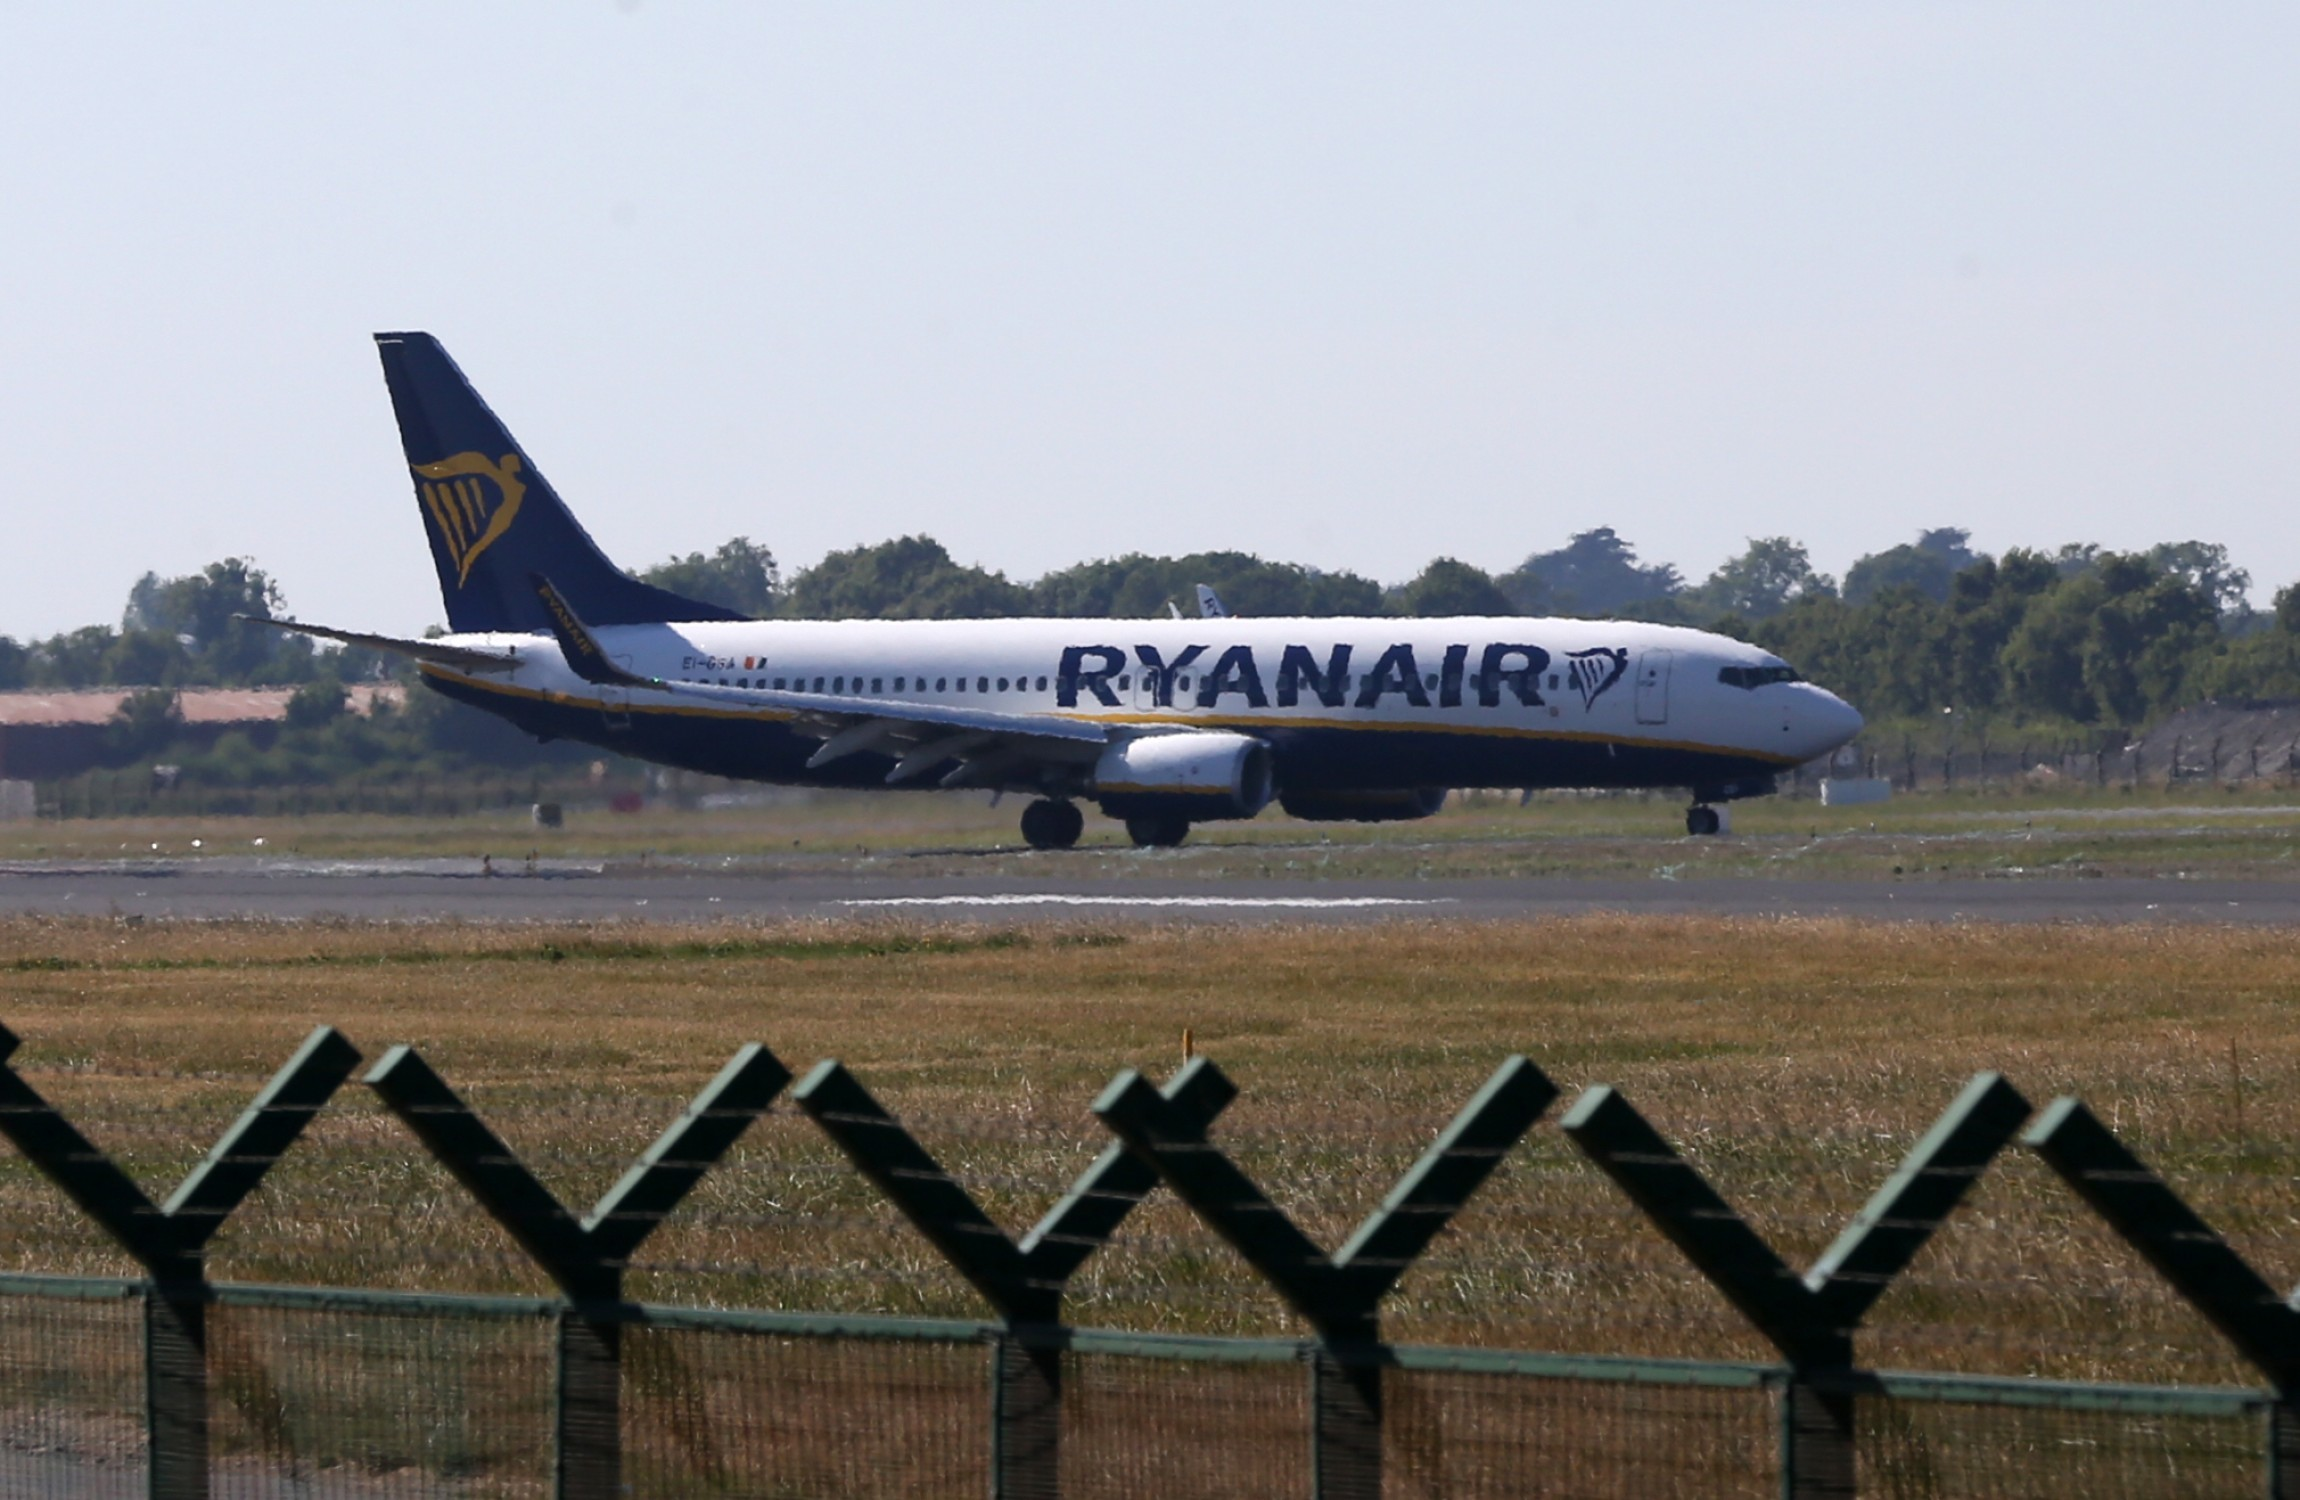 Portugal: Ryanair crew on strike from today until Sunday